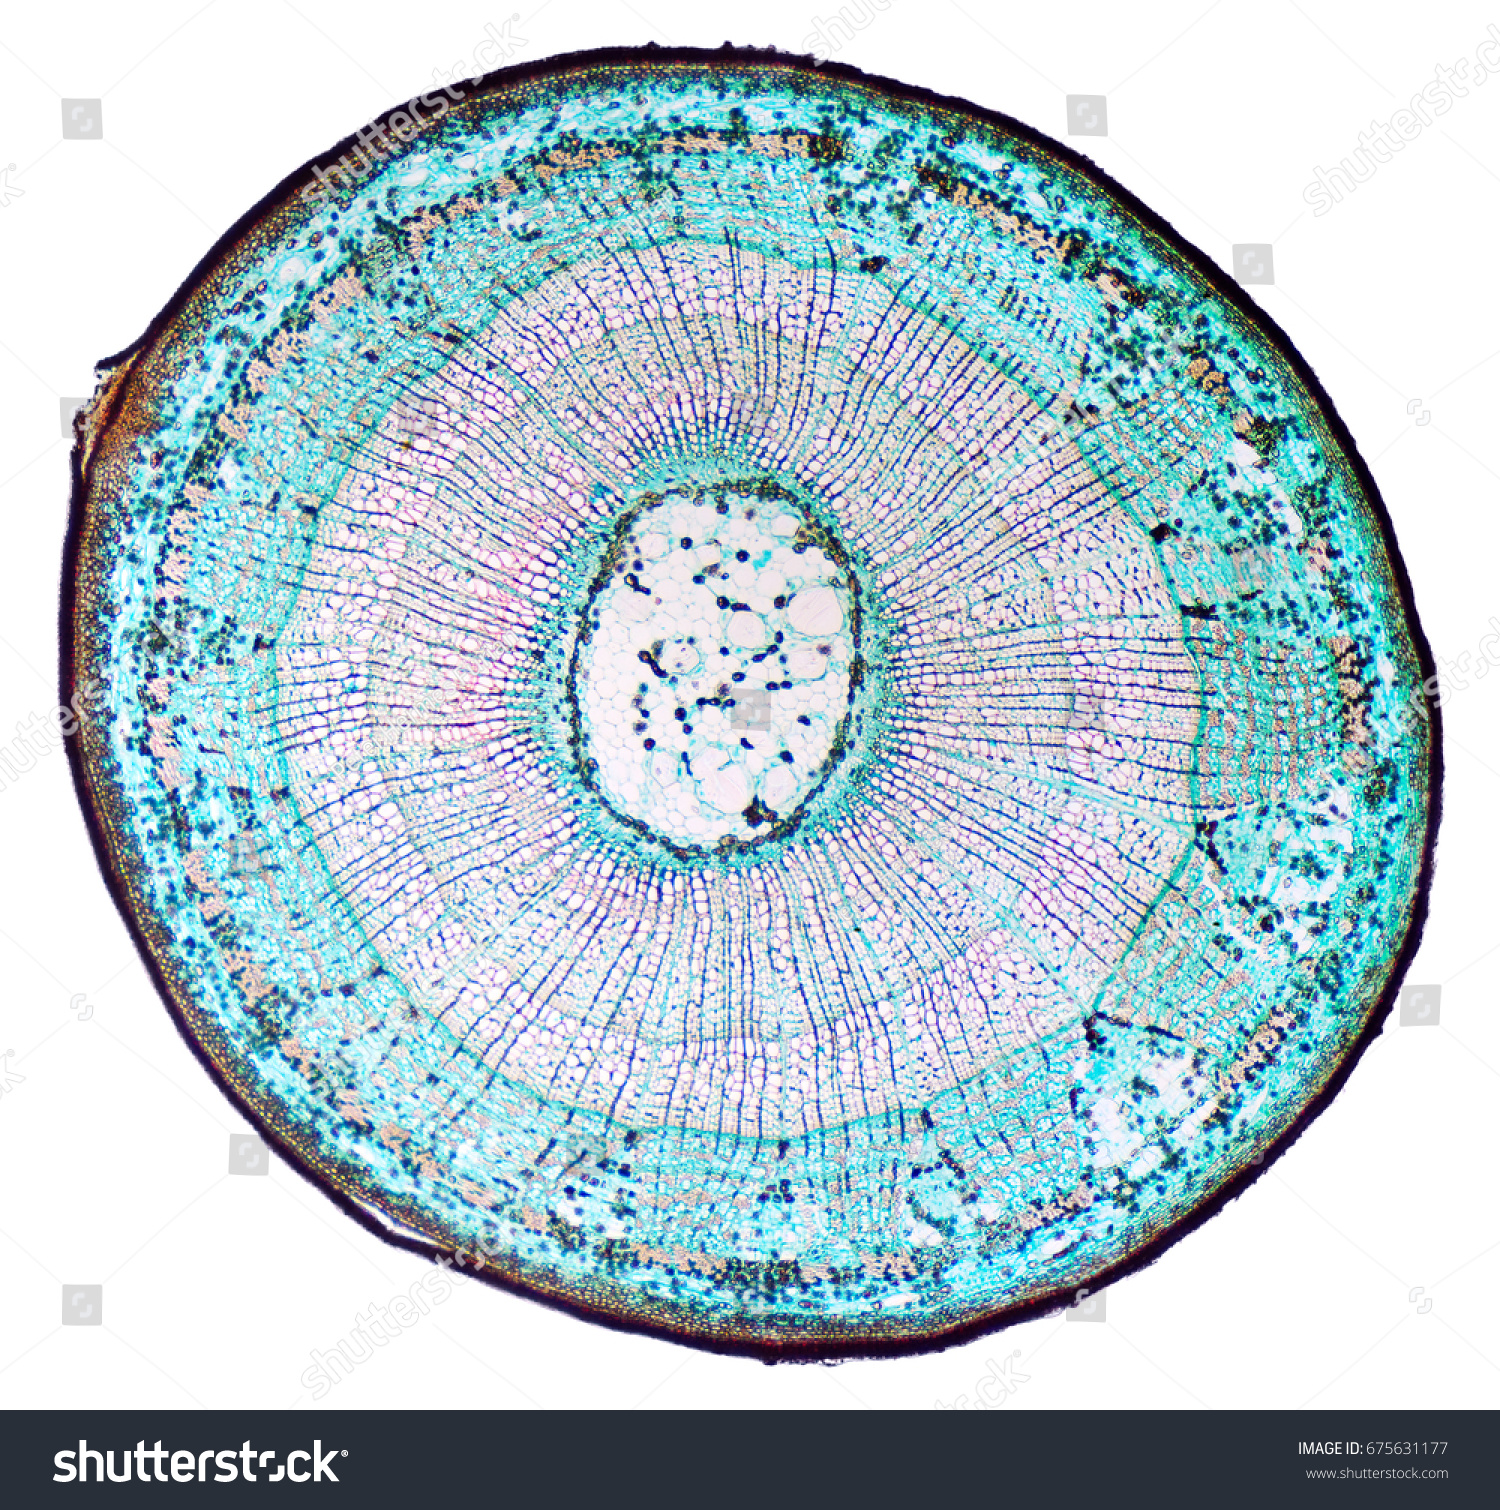 Basswood Stem Cross Section Light Microscope Stock Photo (Royalty ...